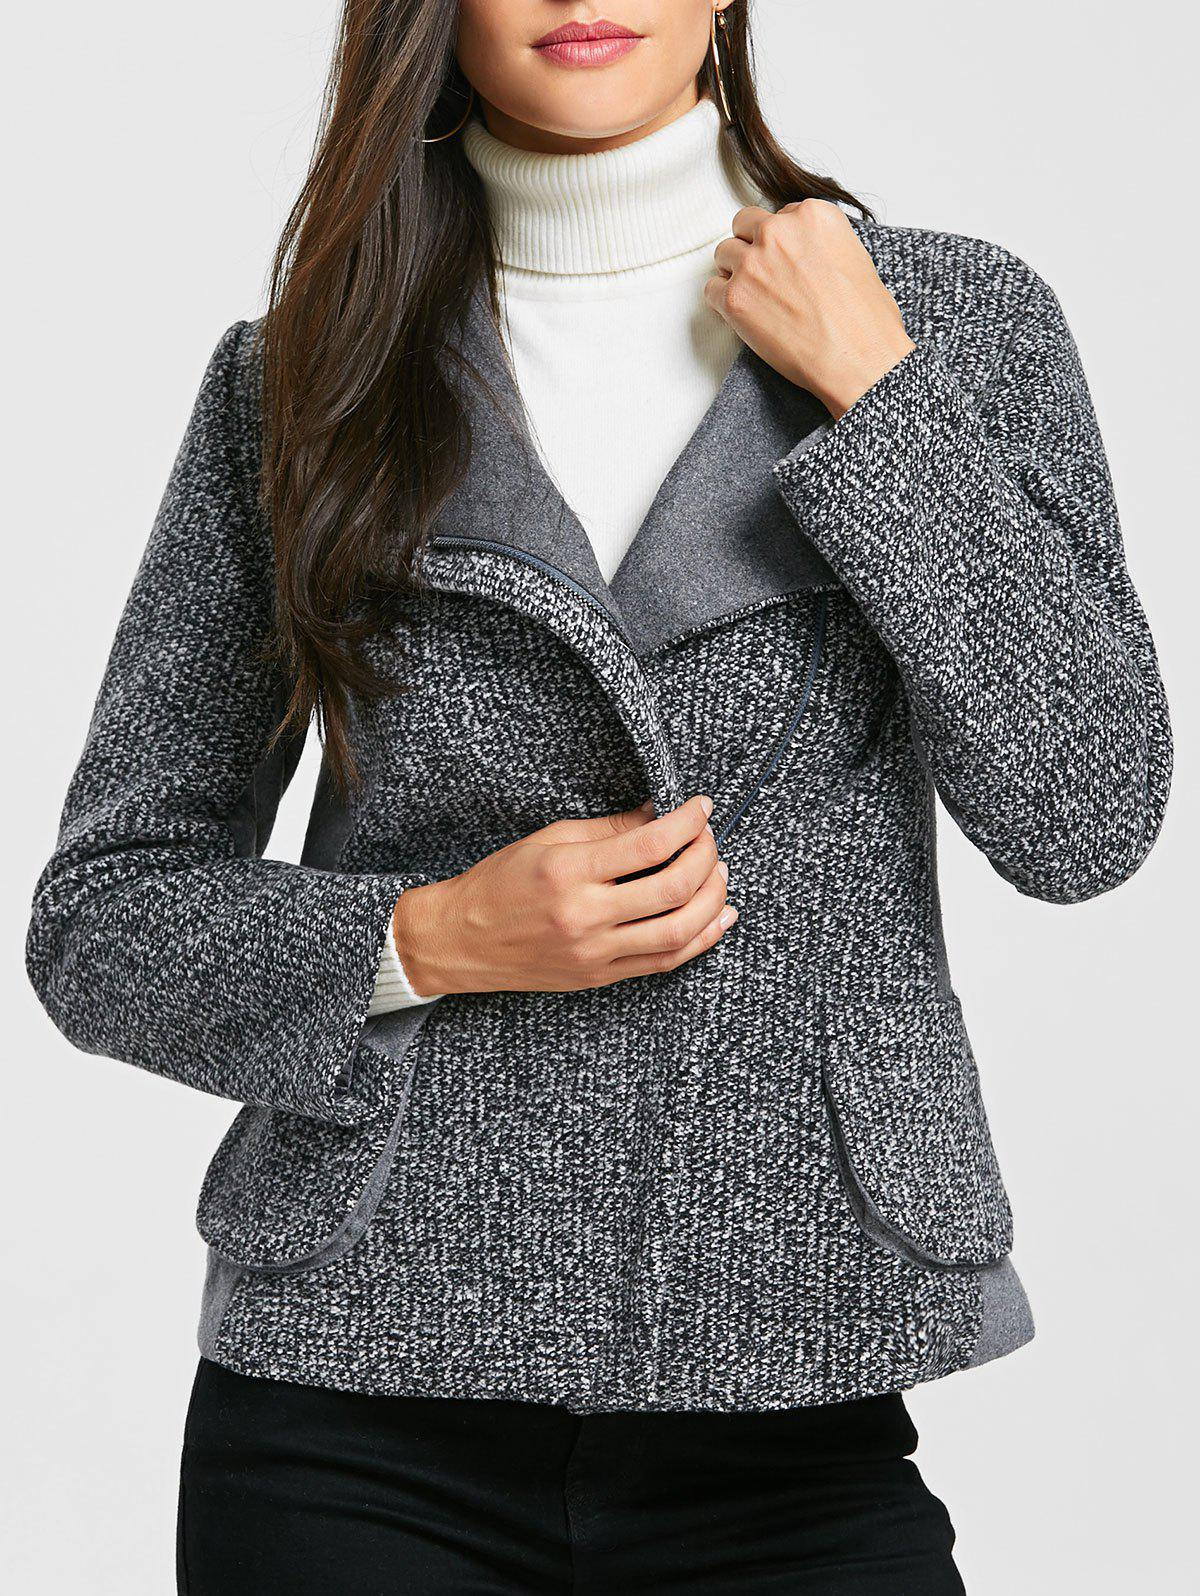 Discount Pockets Oblique Zipper Tweed Jacket